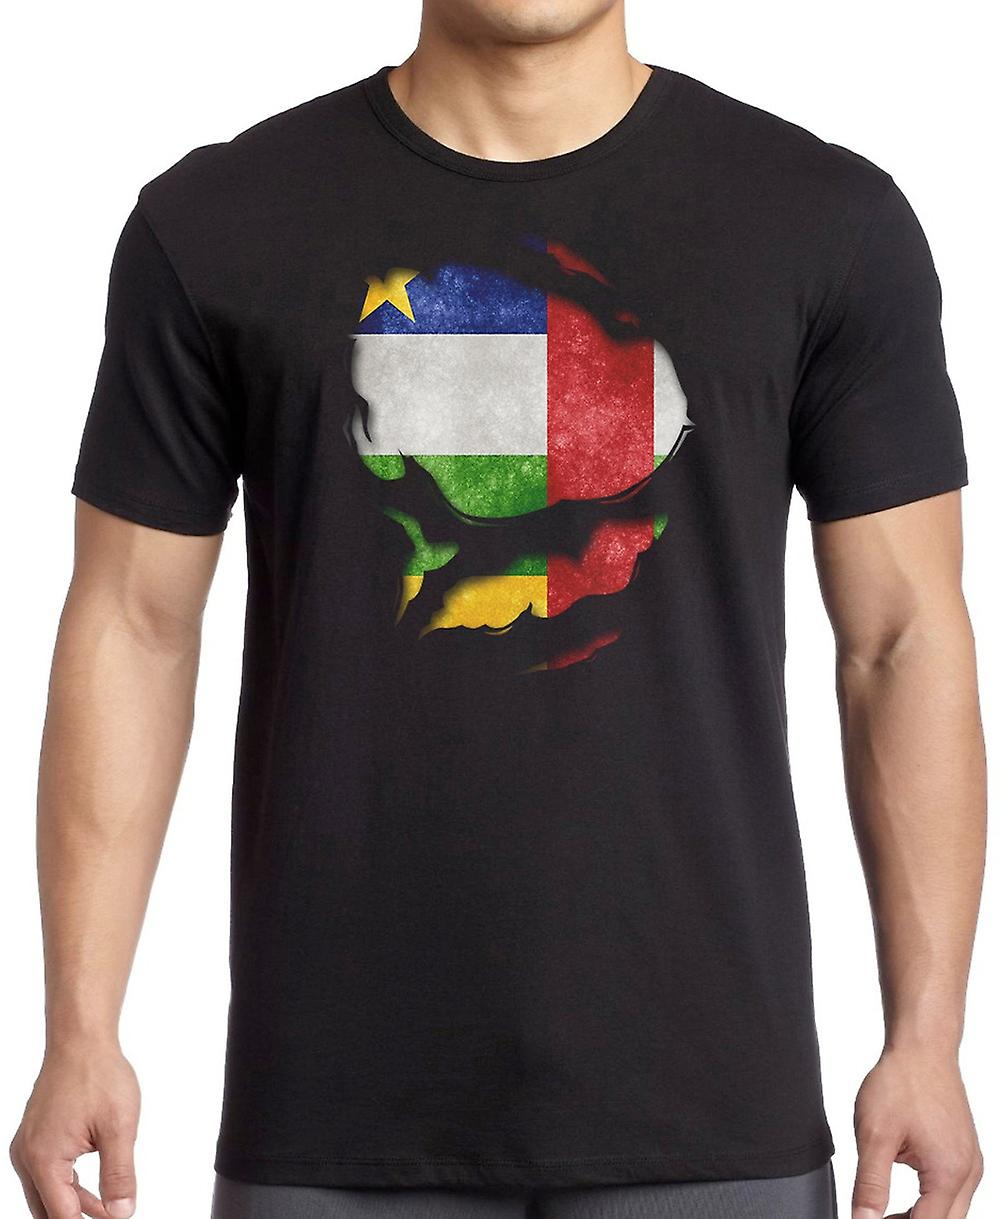 Czech Republic Ripped Effect Under Shirt Kids T Shirt